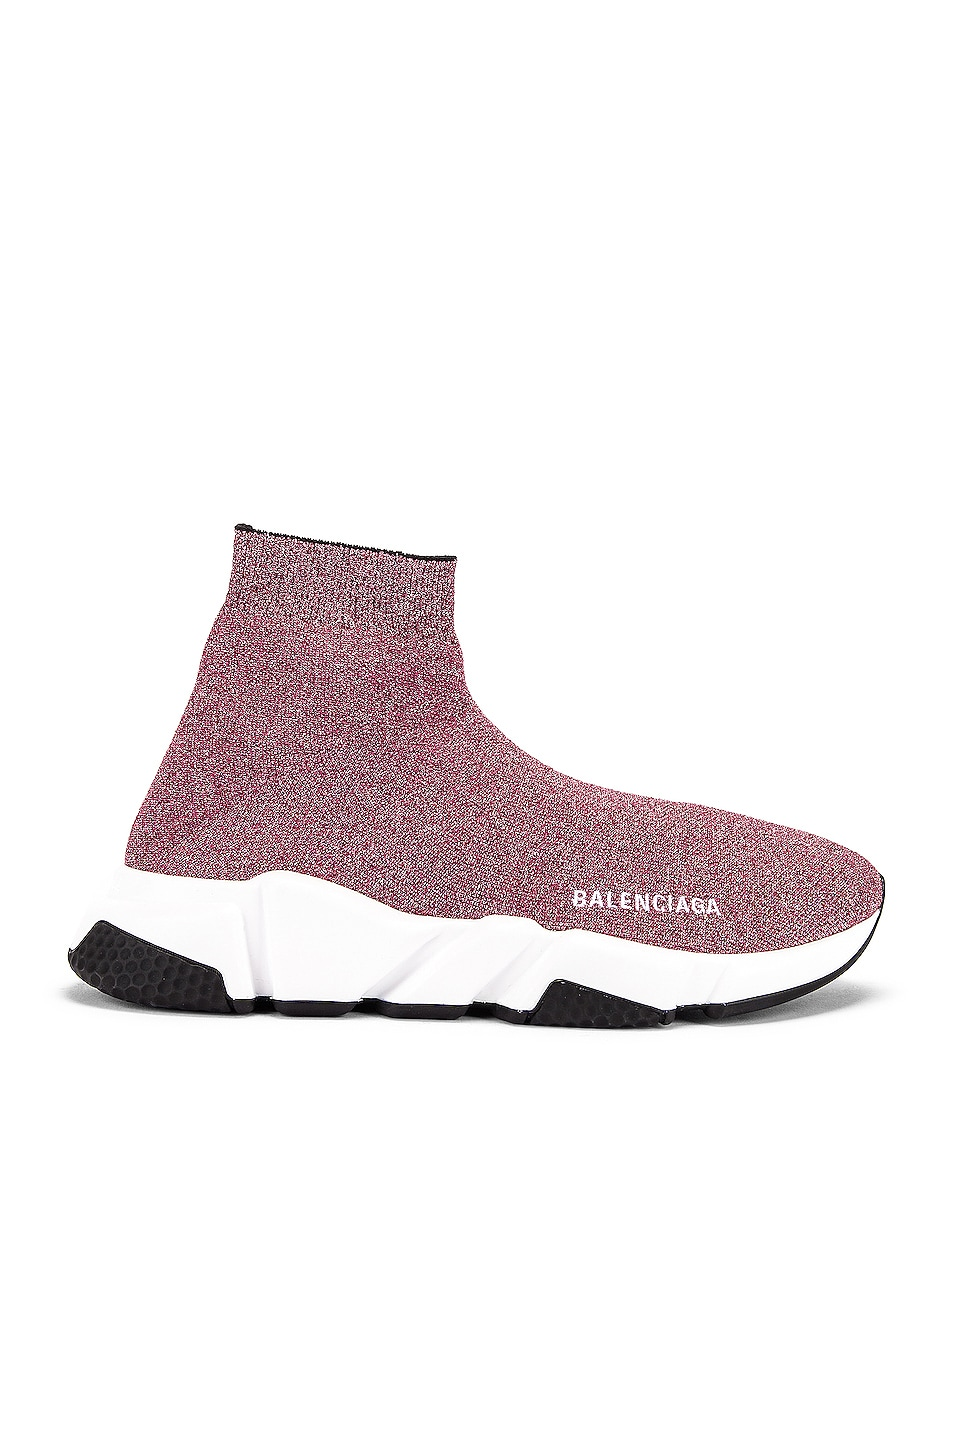 Image 1 of Balenciaga Bicolor Speed Sneakers in Pink & White & Black